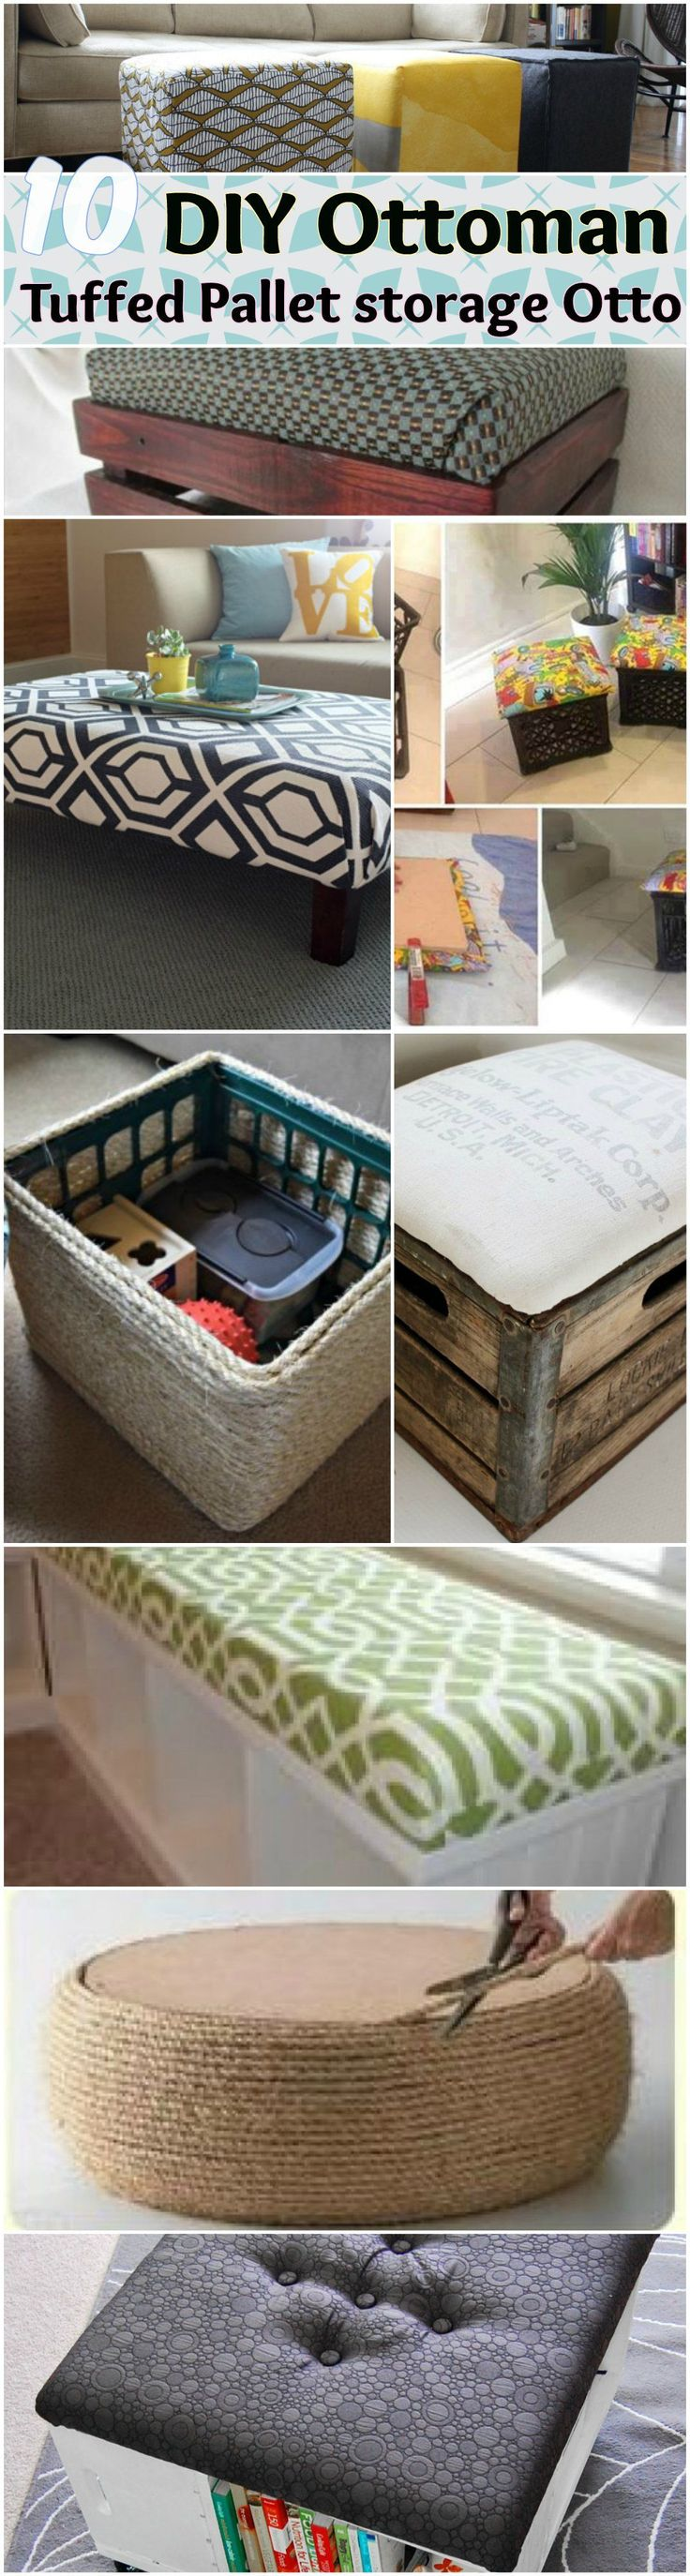 DIY Storage Ottoman Ideas from Recycle Crates and Pallets. Easy Homemade Tufted upholster cushion Storage Ottoman from scratch. made with recycled items , crates and pallets. And some Round tire ottoman.